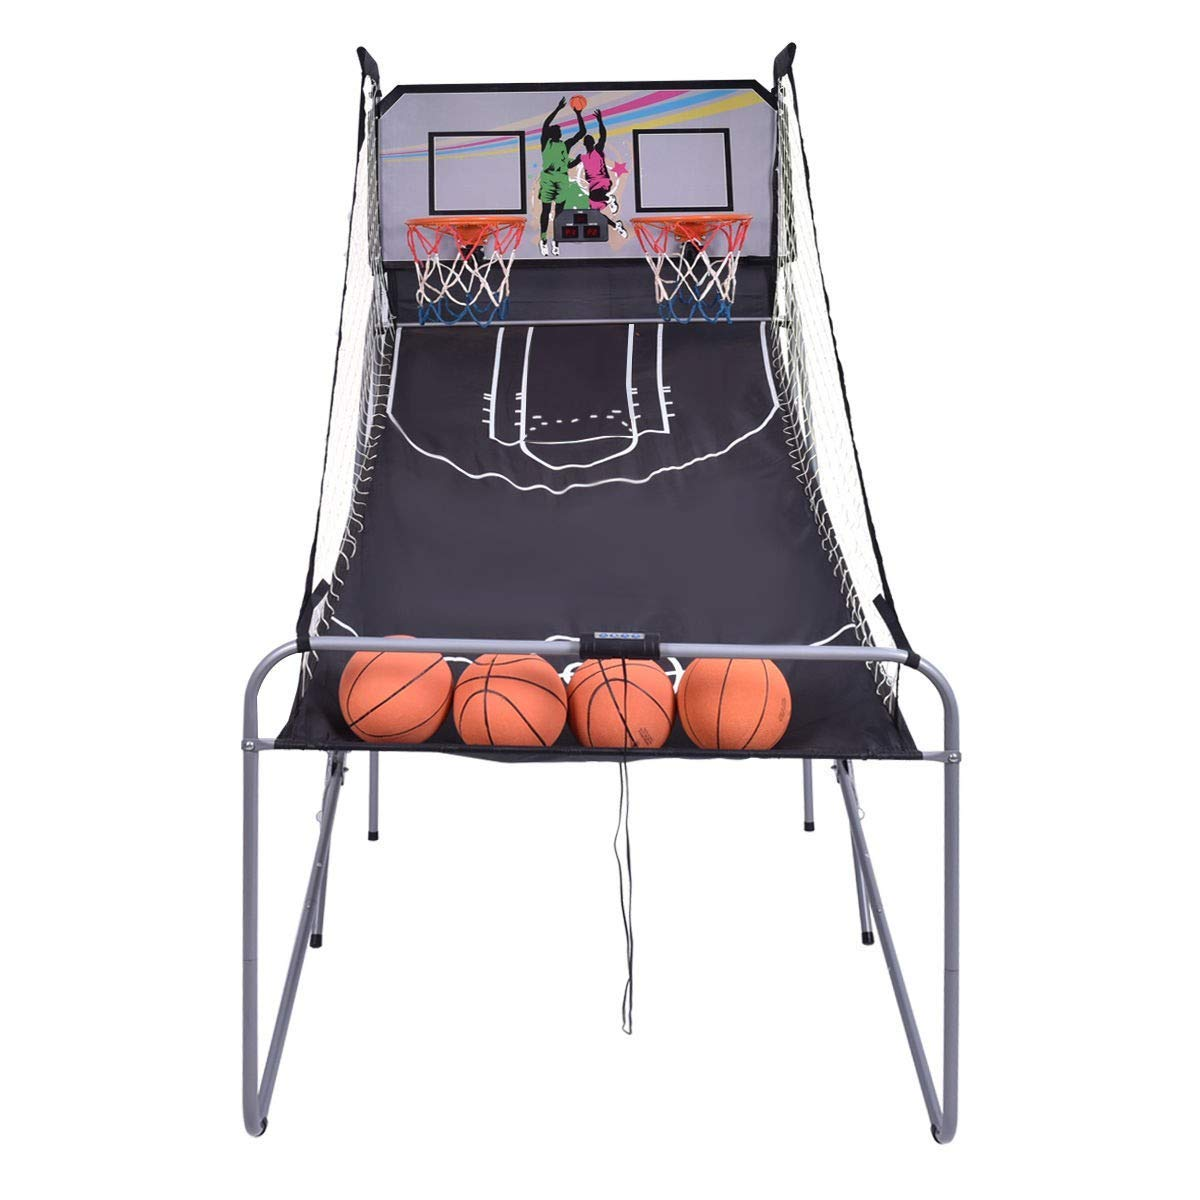 BeUniqueToday Indoor Double Electronic Basketball Game with 4 Balls, Double Shot Electronic Basketball Game with Sound Effects, Basketball with Electronic Score Board with Dual Display